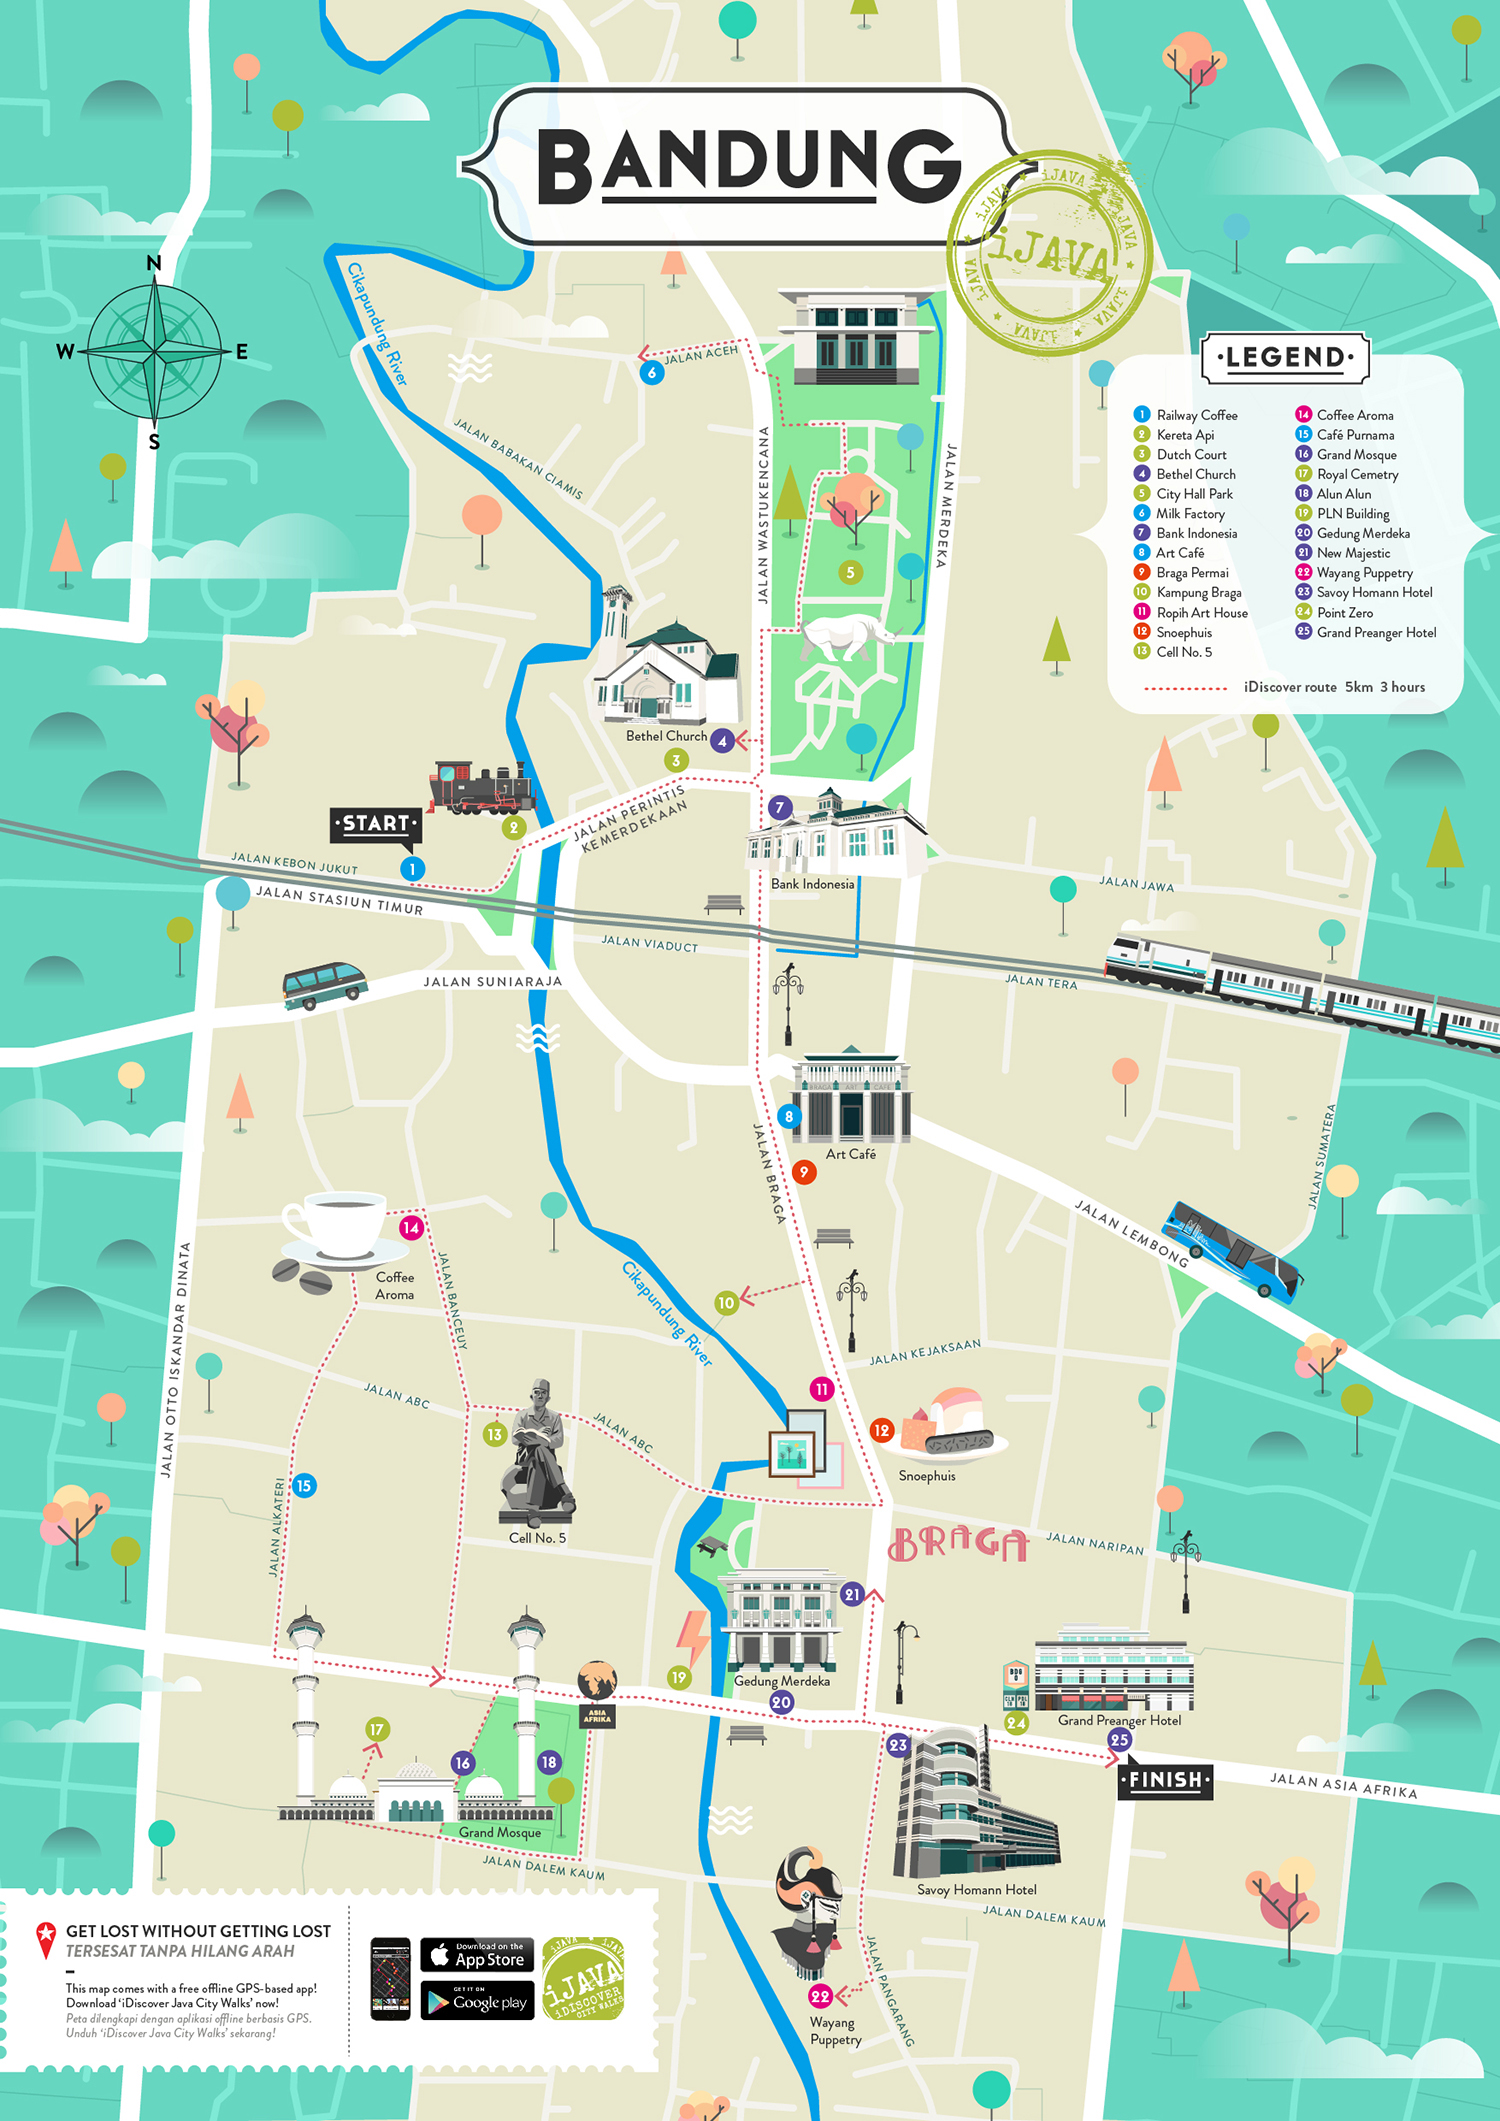 iDiscover Bandung Illustrated Map on Behance